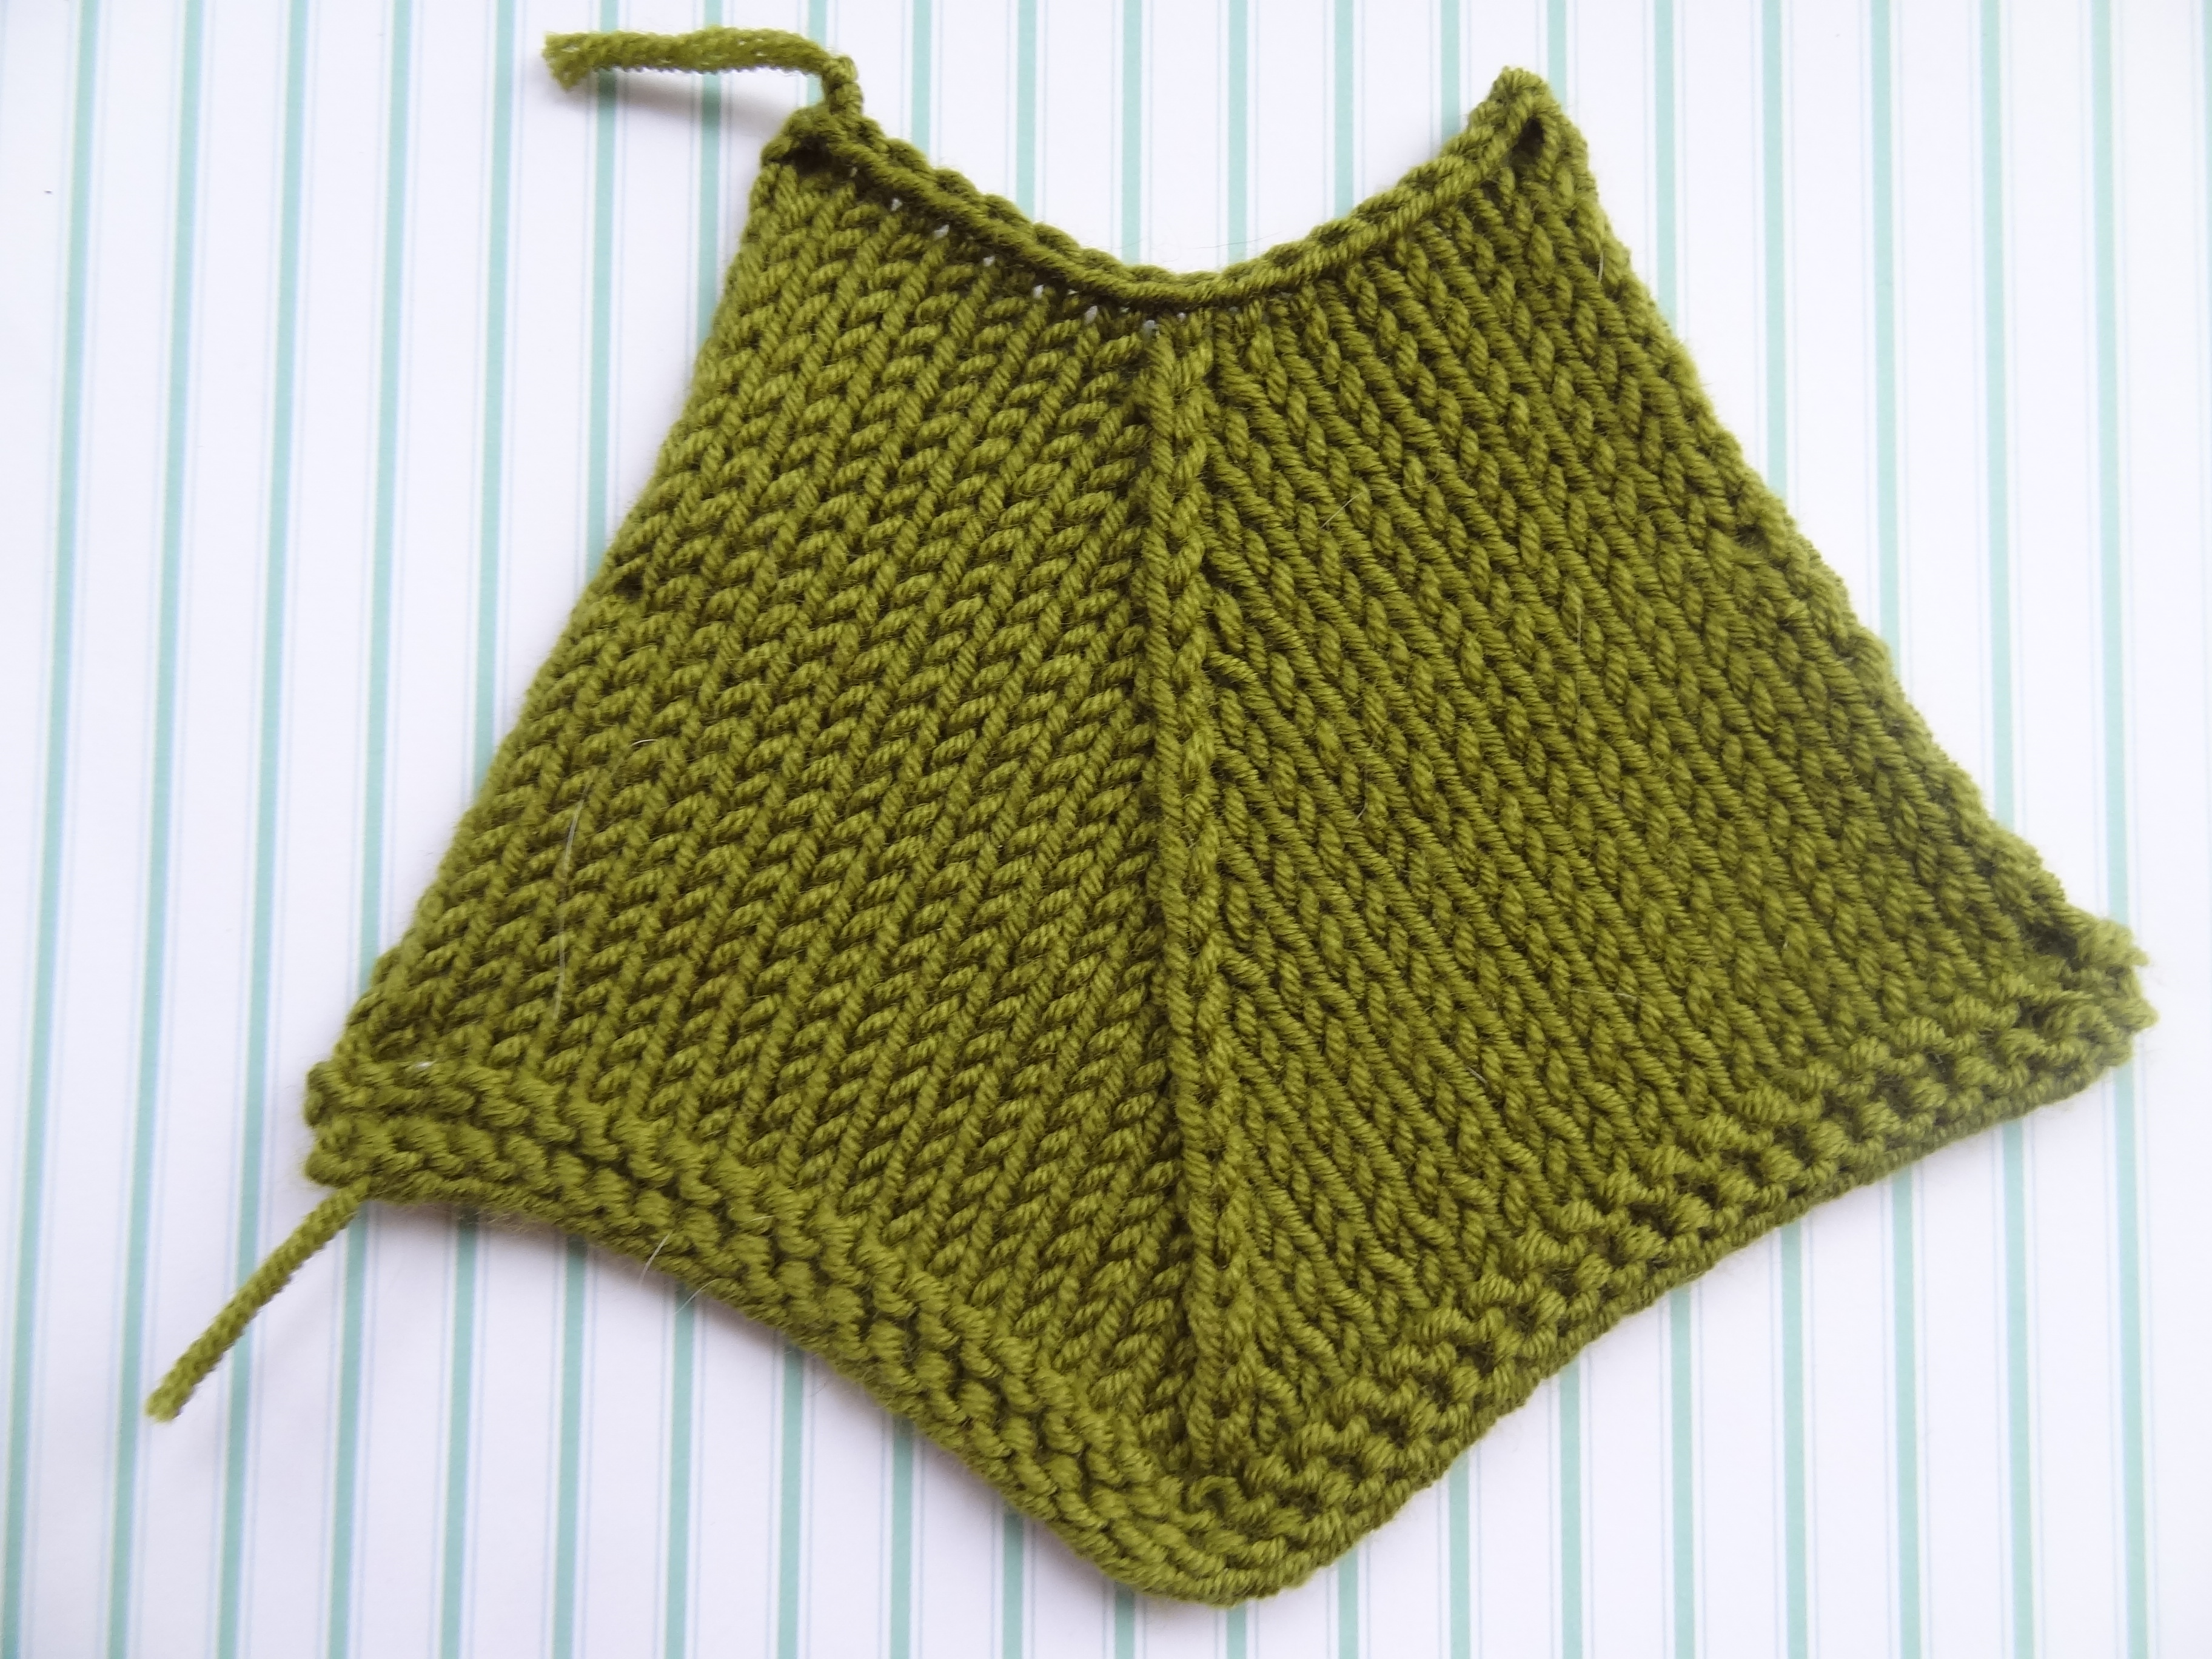 How to knit, Stitches and Knits on Pinterest